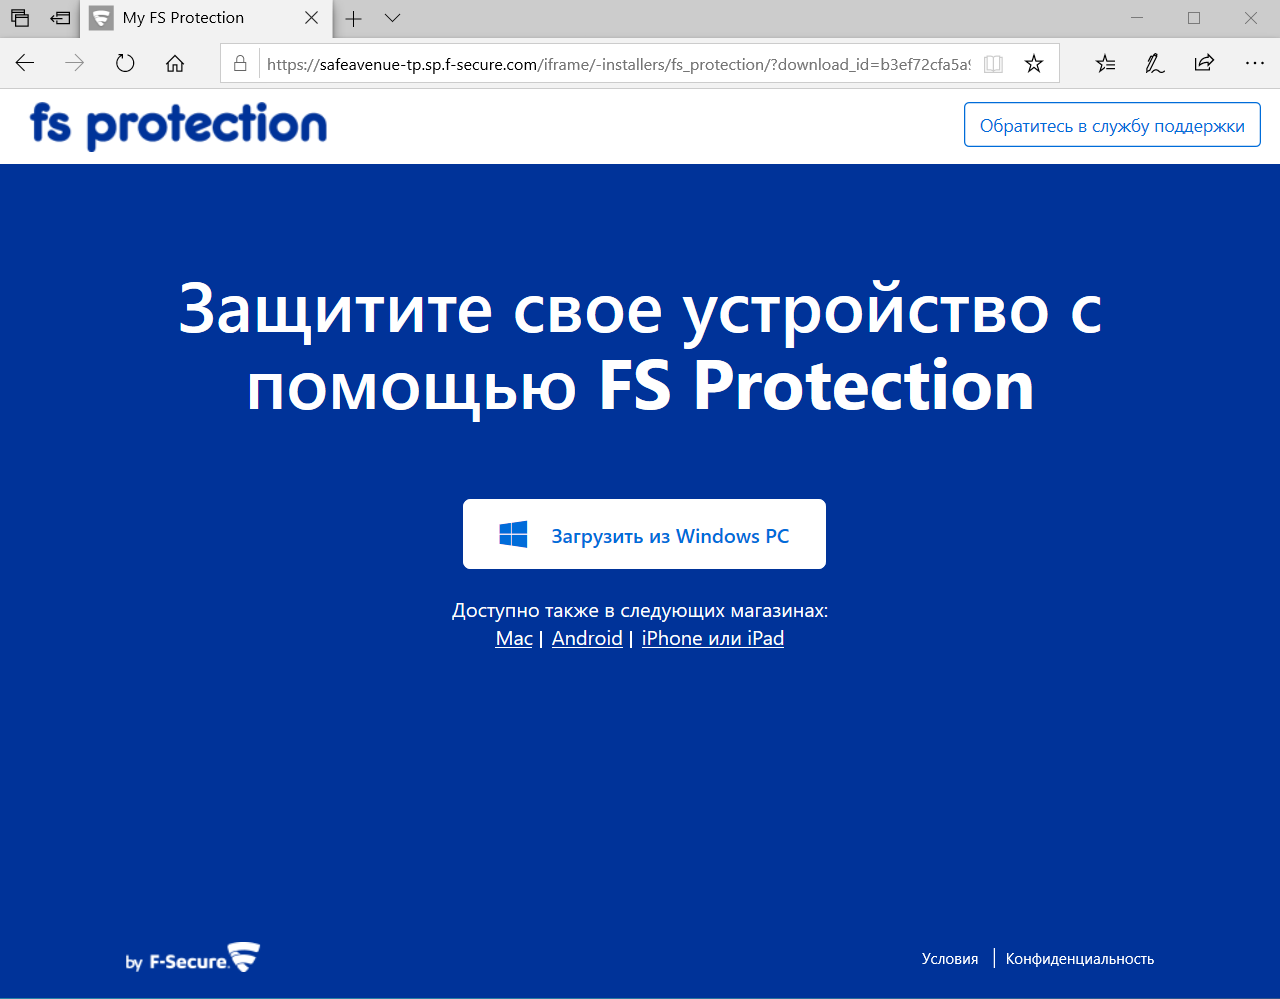 After the registration, you can download FS Protection for various platforms